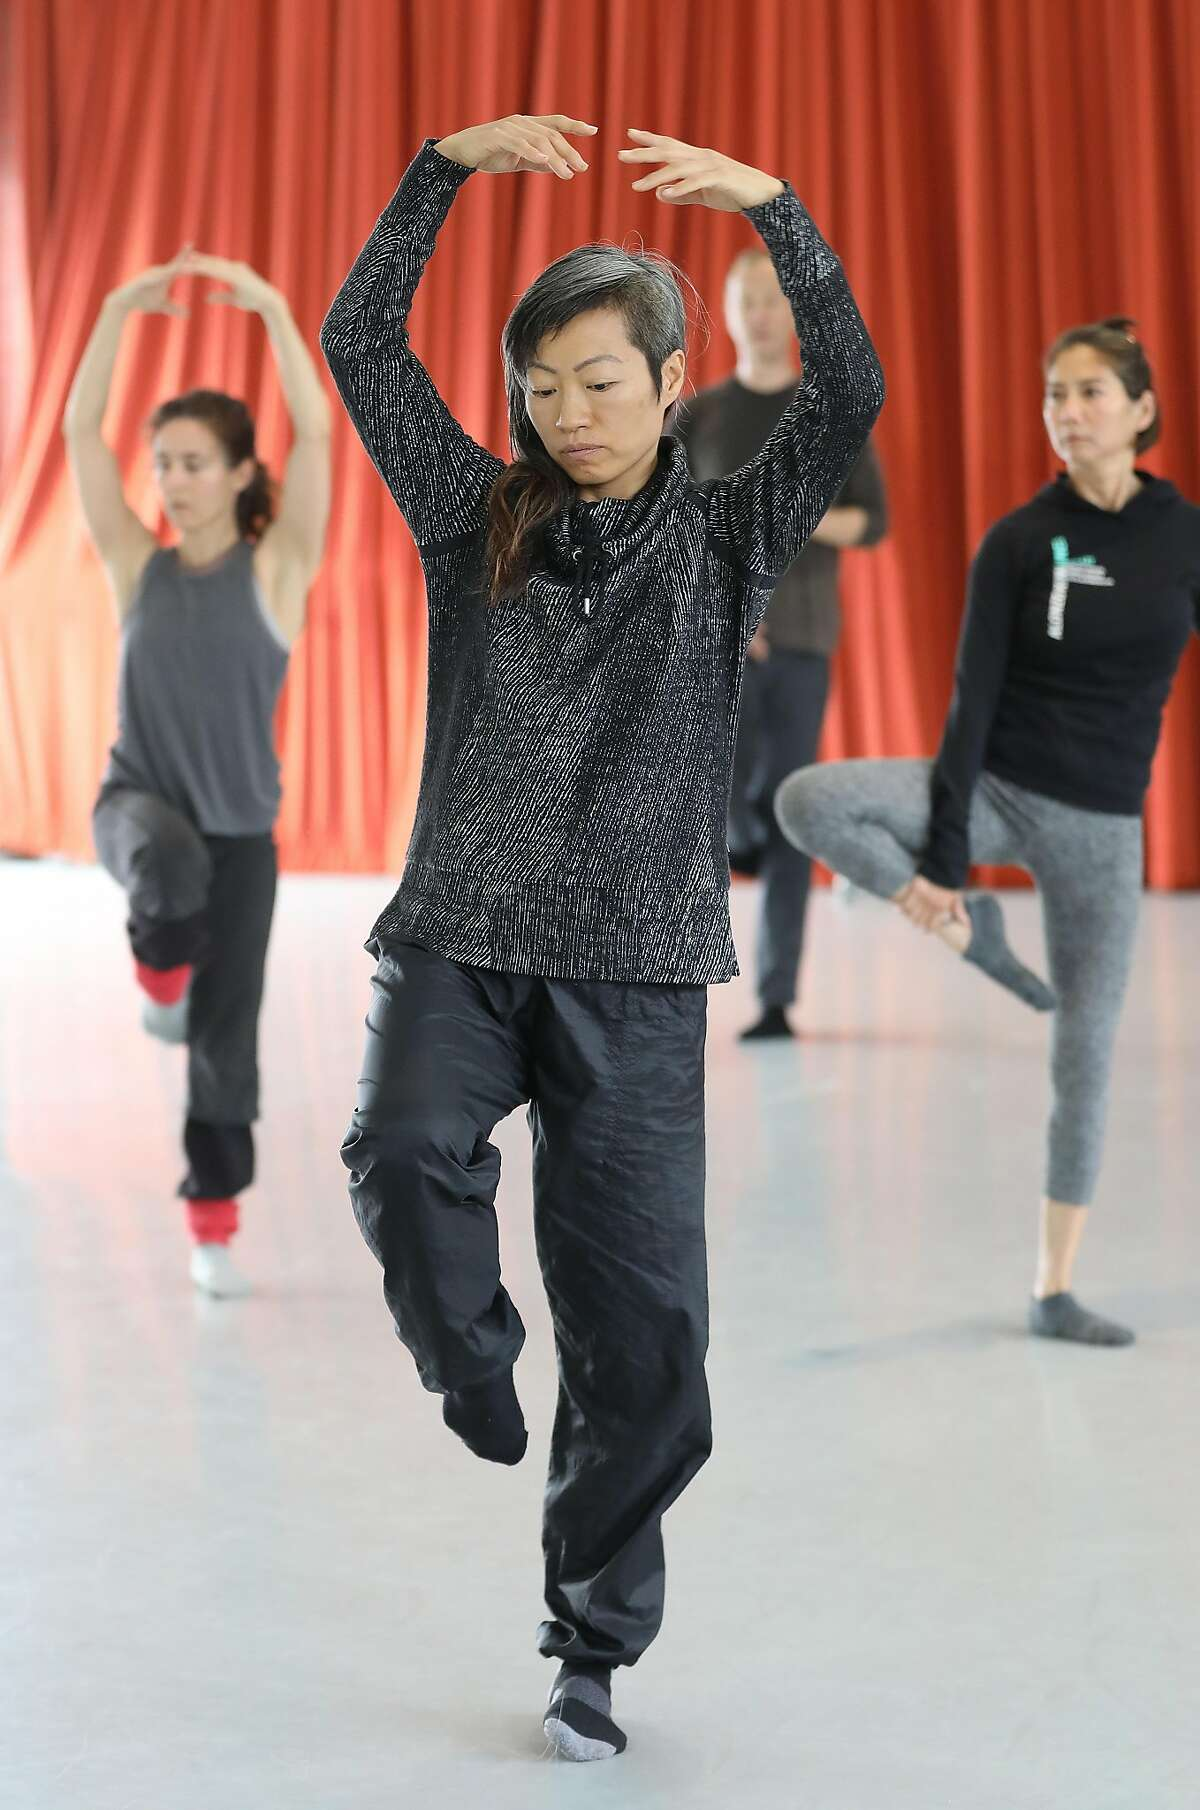 Priscilla Park takes an advanced contemporary dance class at ODC on Thursday, Oct. 25, 2018 in San Francisco, Calif. Prop E, a measure on the SF ballot would link arts and cultural funding, like ODC, a contemporary dance and arts organization founded in 1971, to the city's hotel tax.